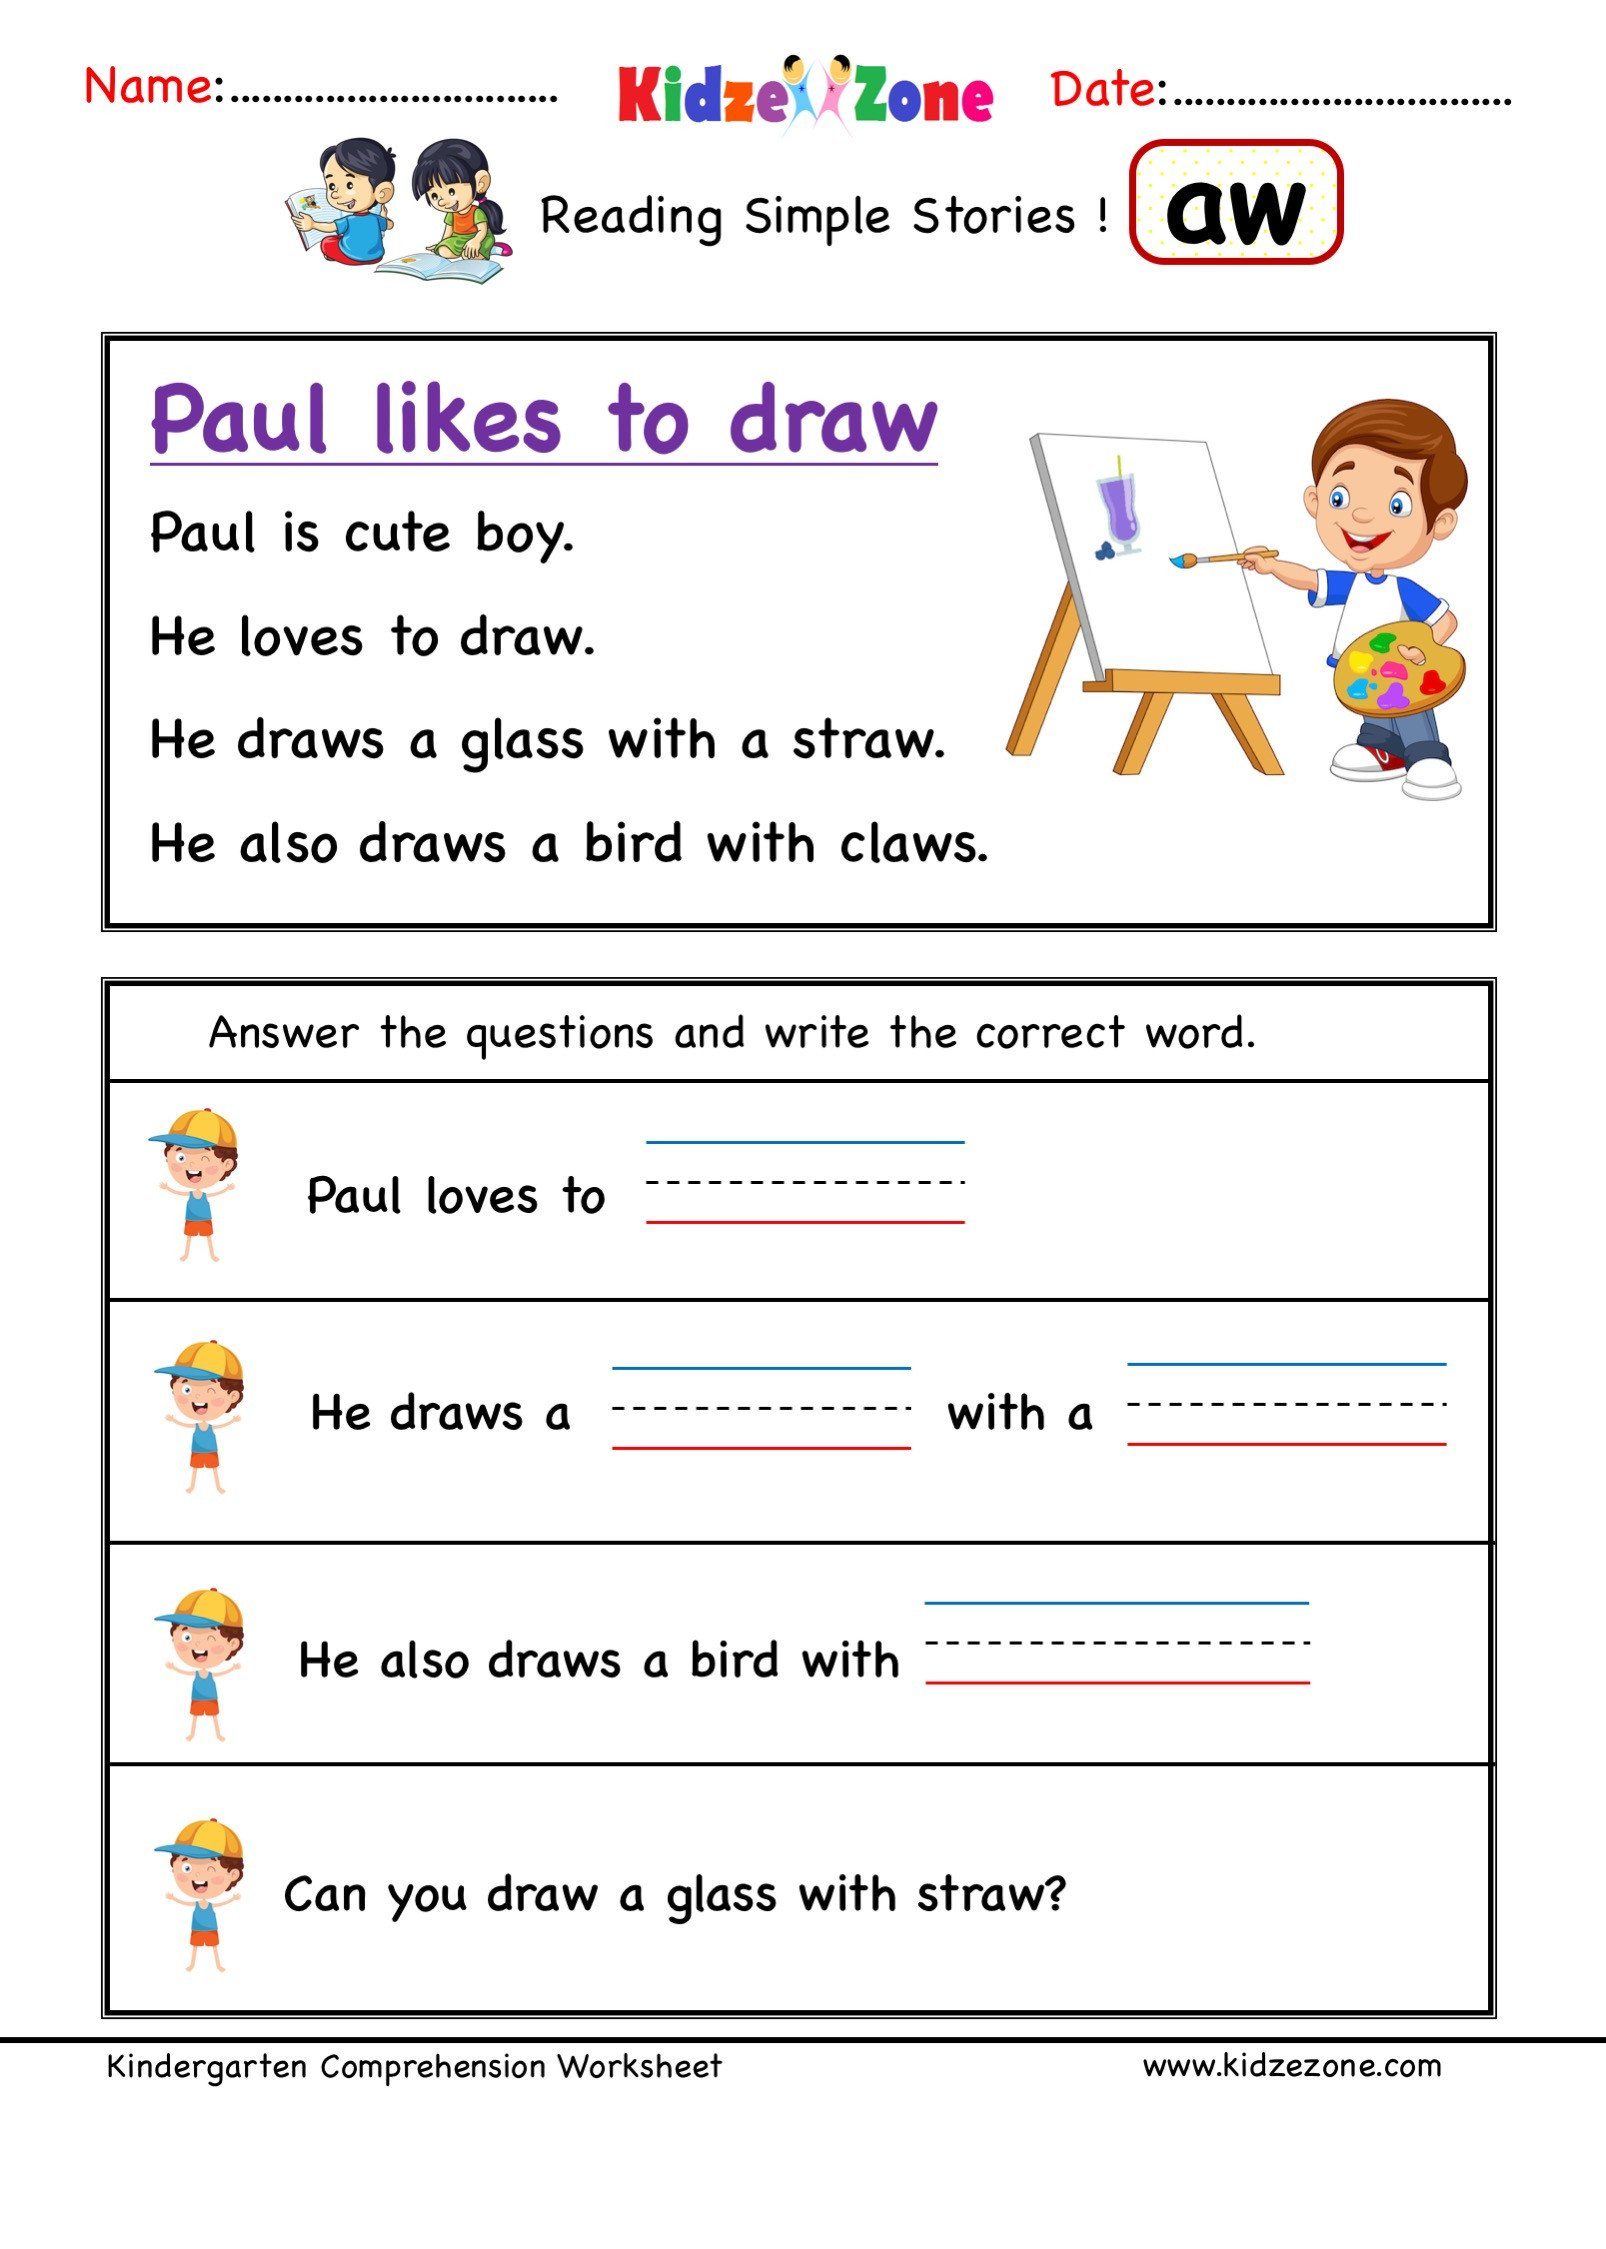 Ccvc Words Worksheets Kindergarten Kindergarten Worksheets Aw Word Family Prehension 3